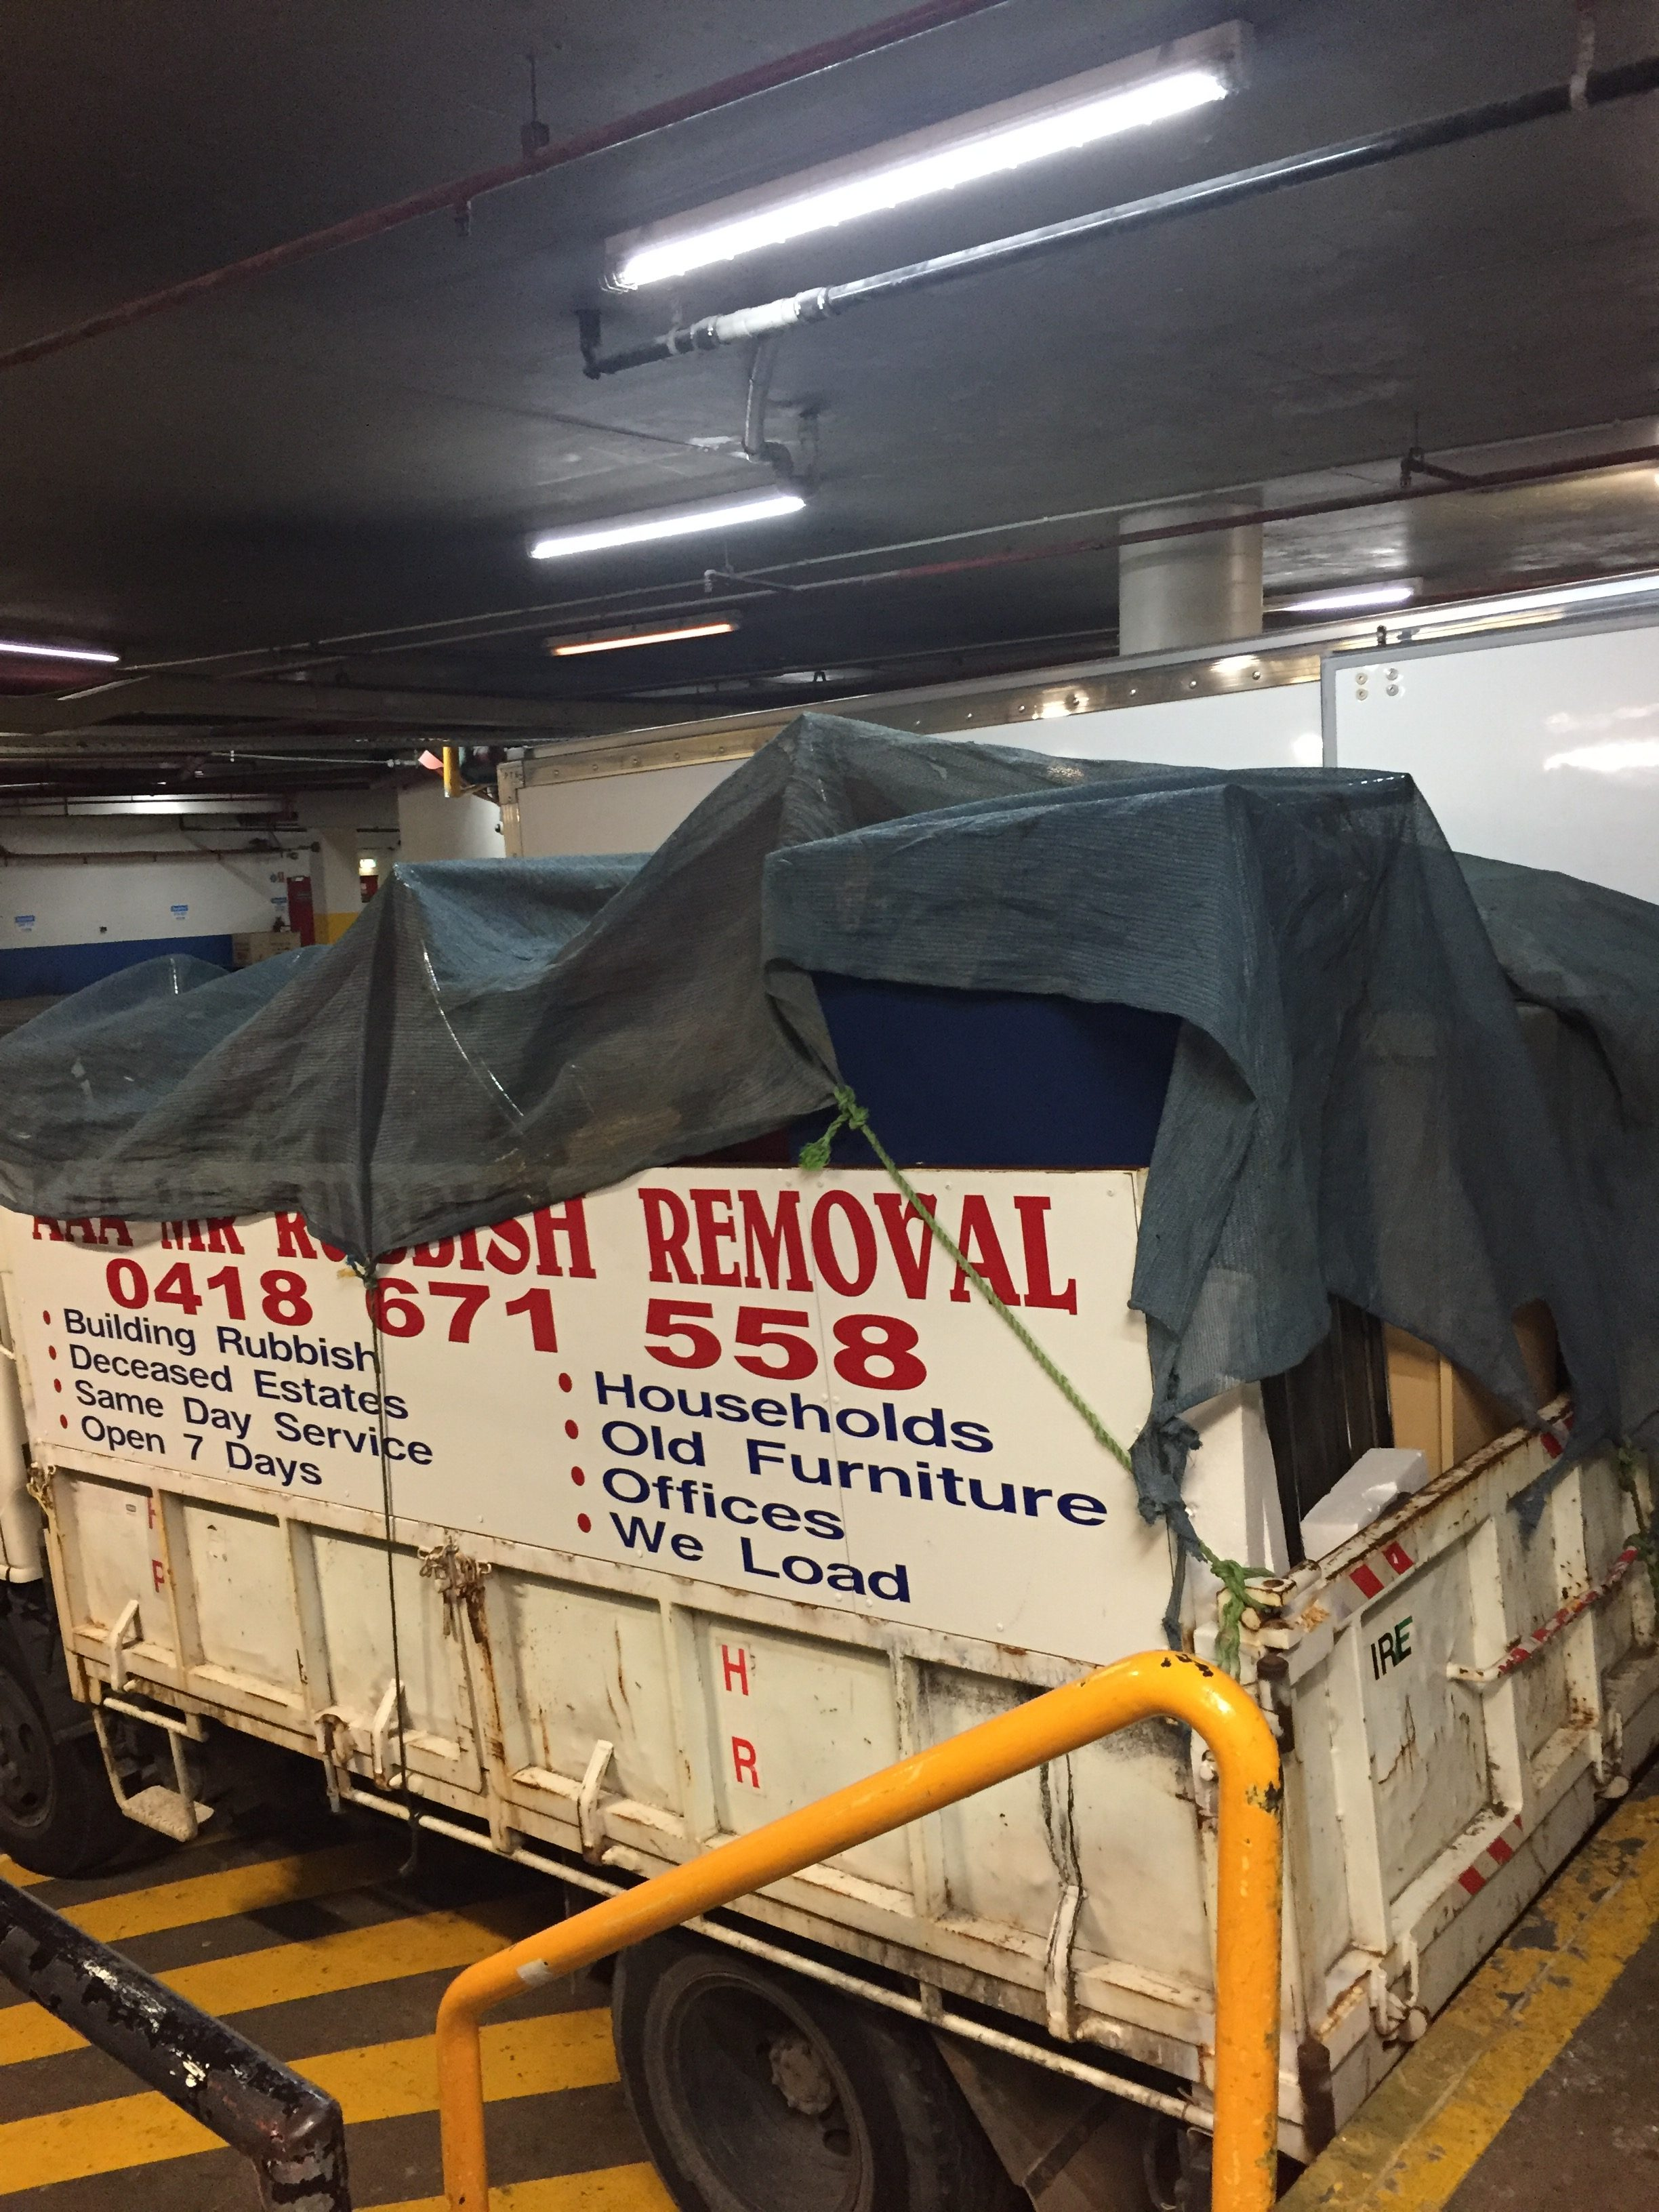 Sydney CBD – Office Rubbish Removal